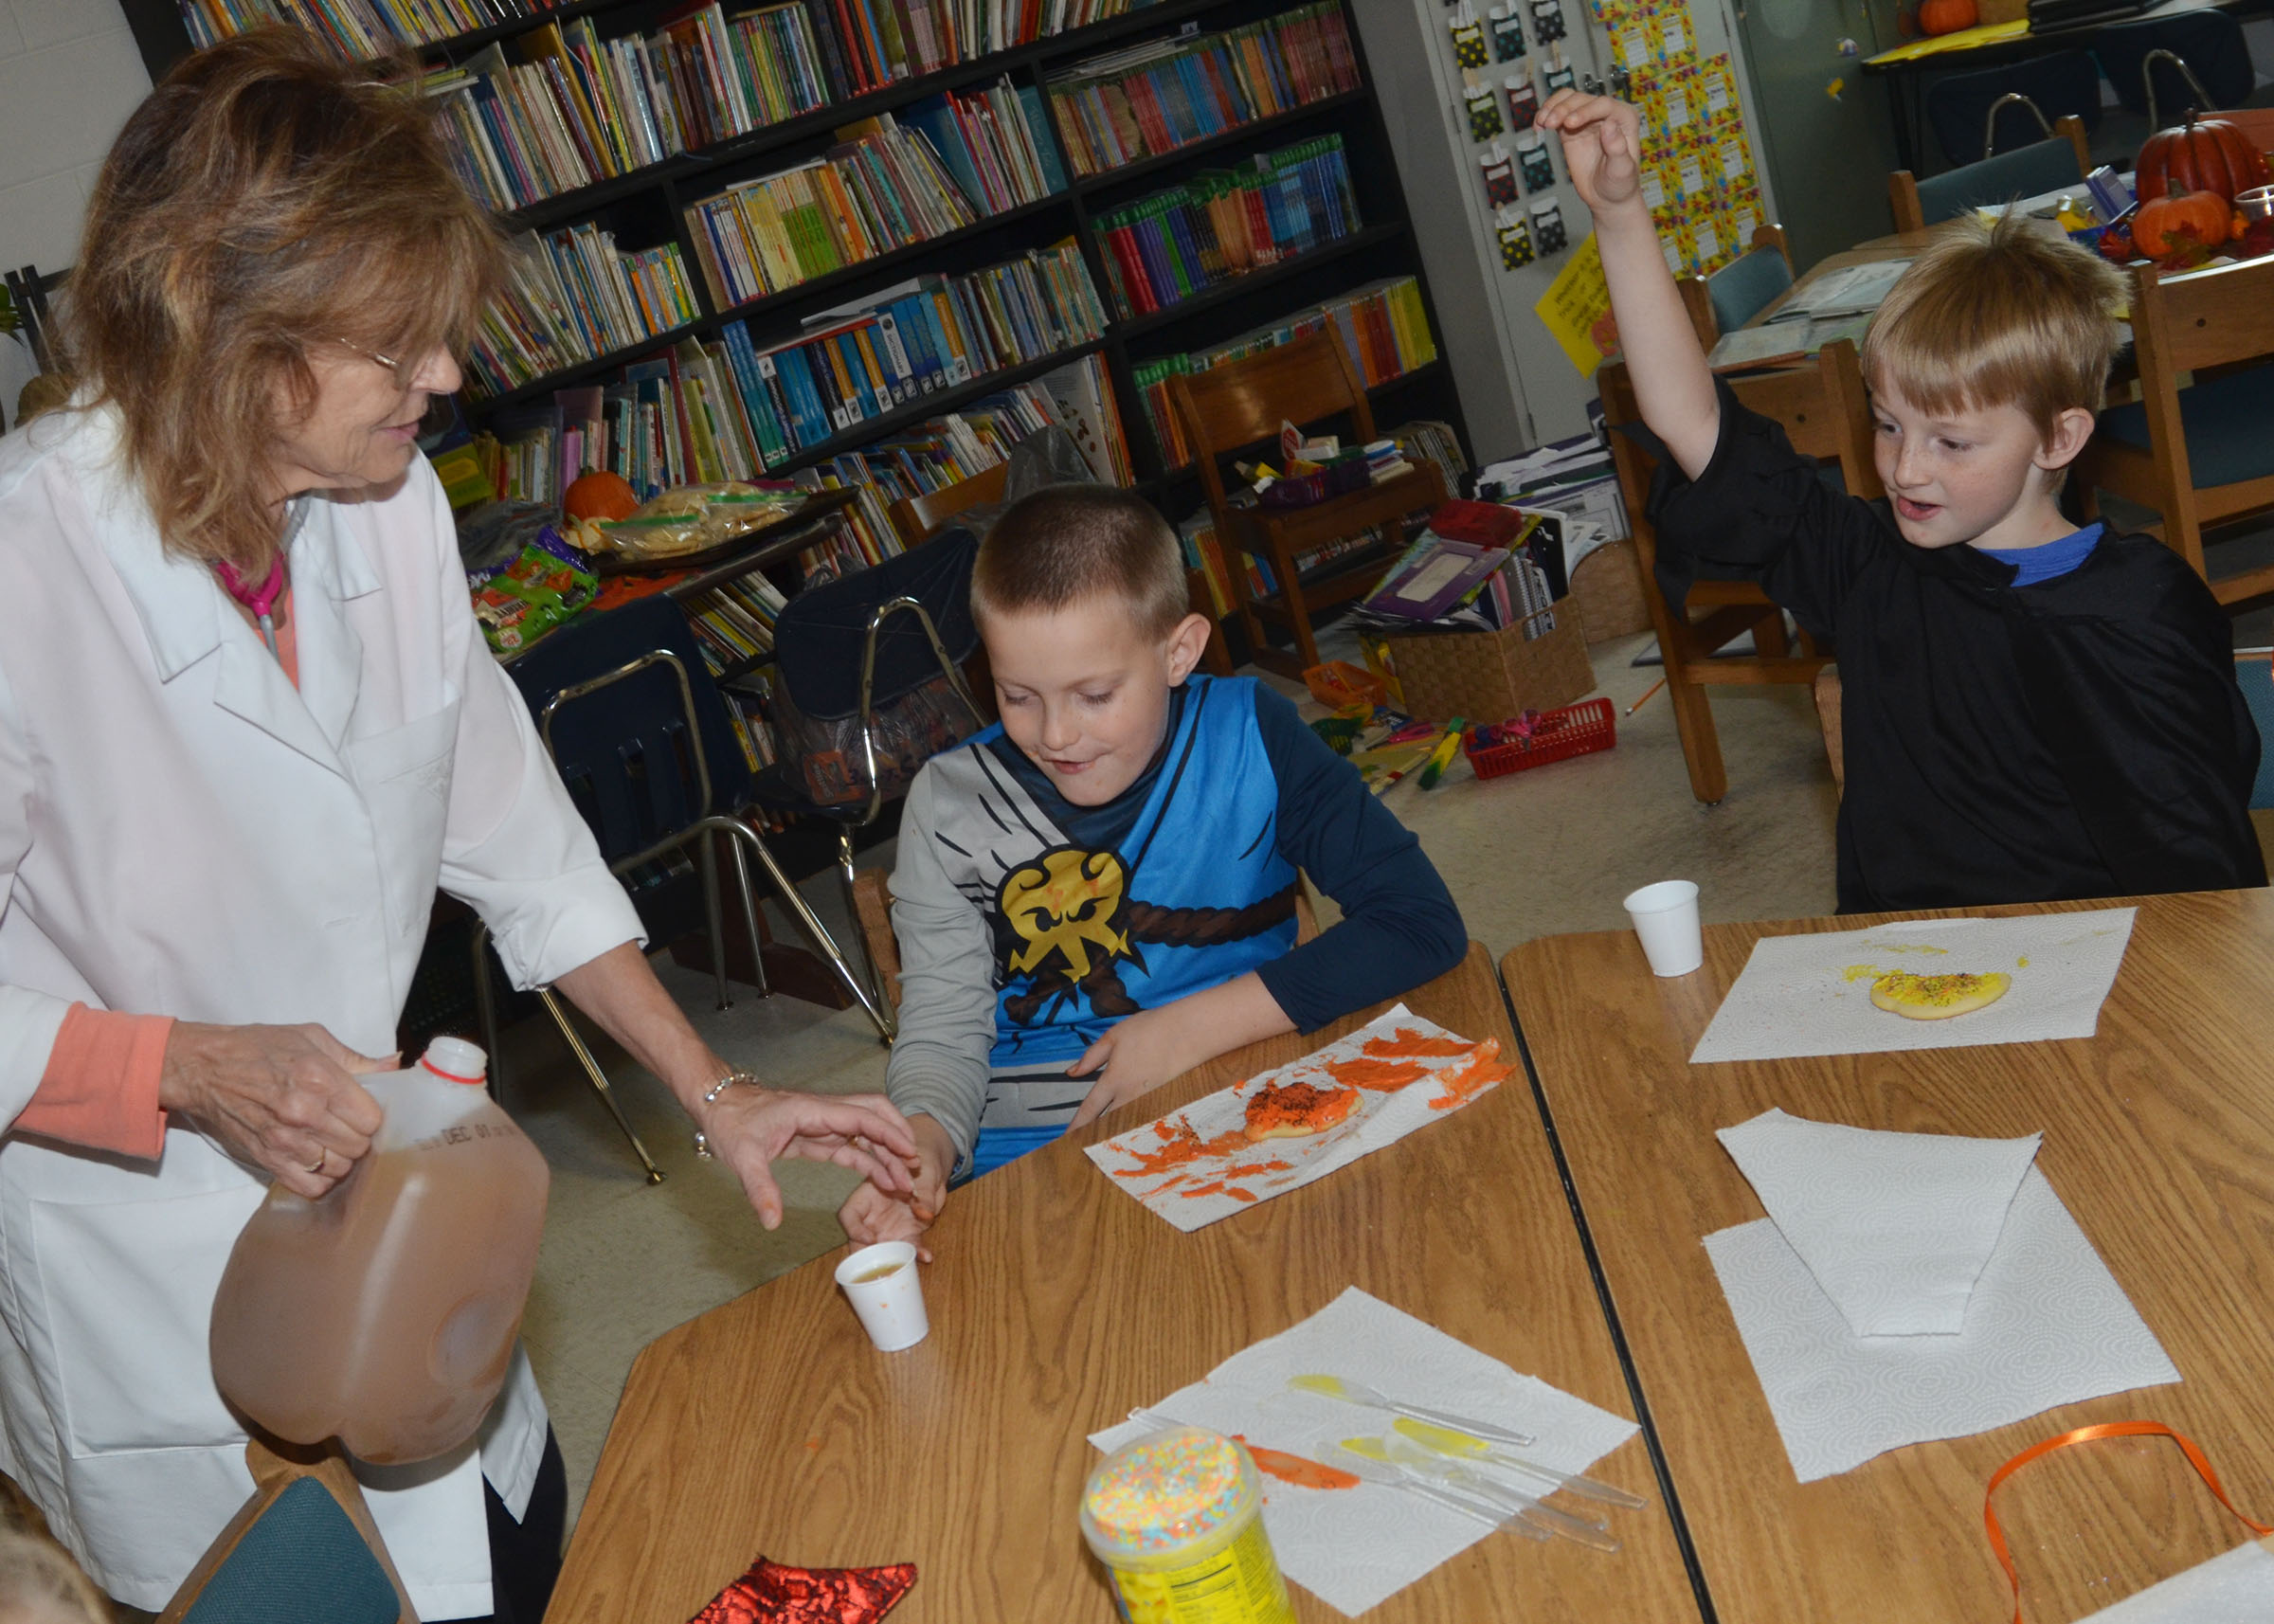 CES third-grade teacher Marcia Sharp serves apple cider as students Bobby Engle, center, and Devin Underwood enjoy the cookies they decorated.